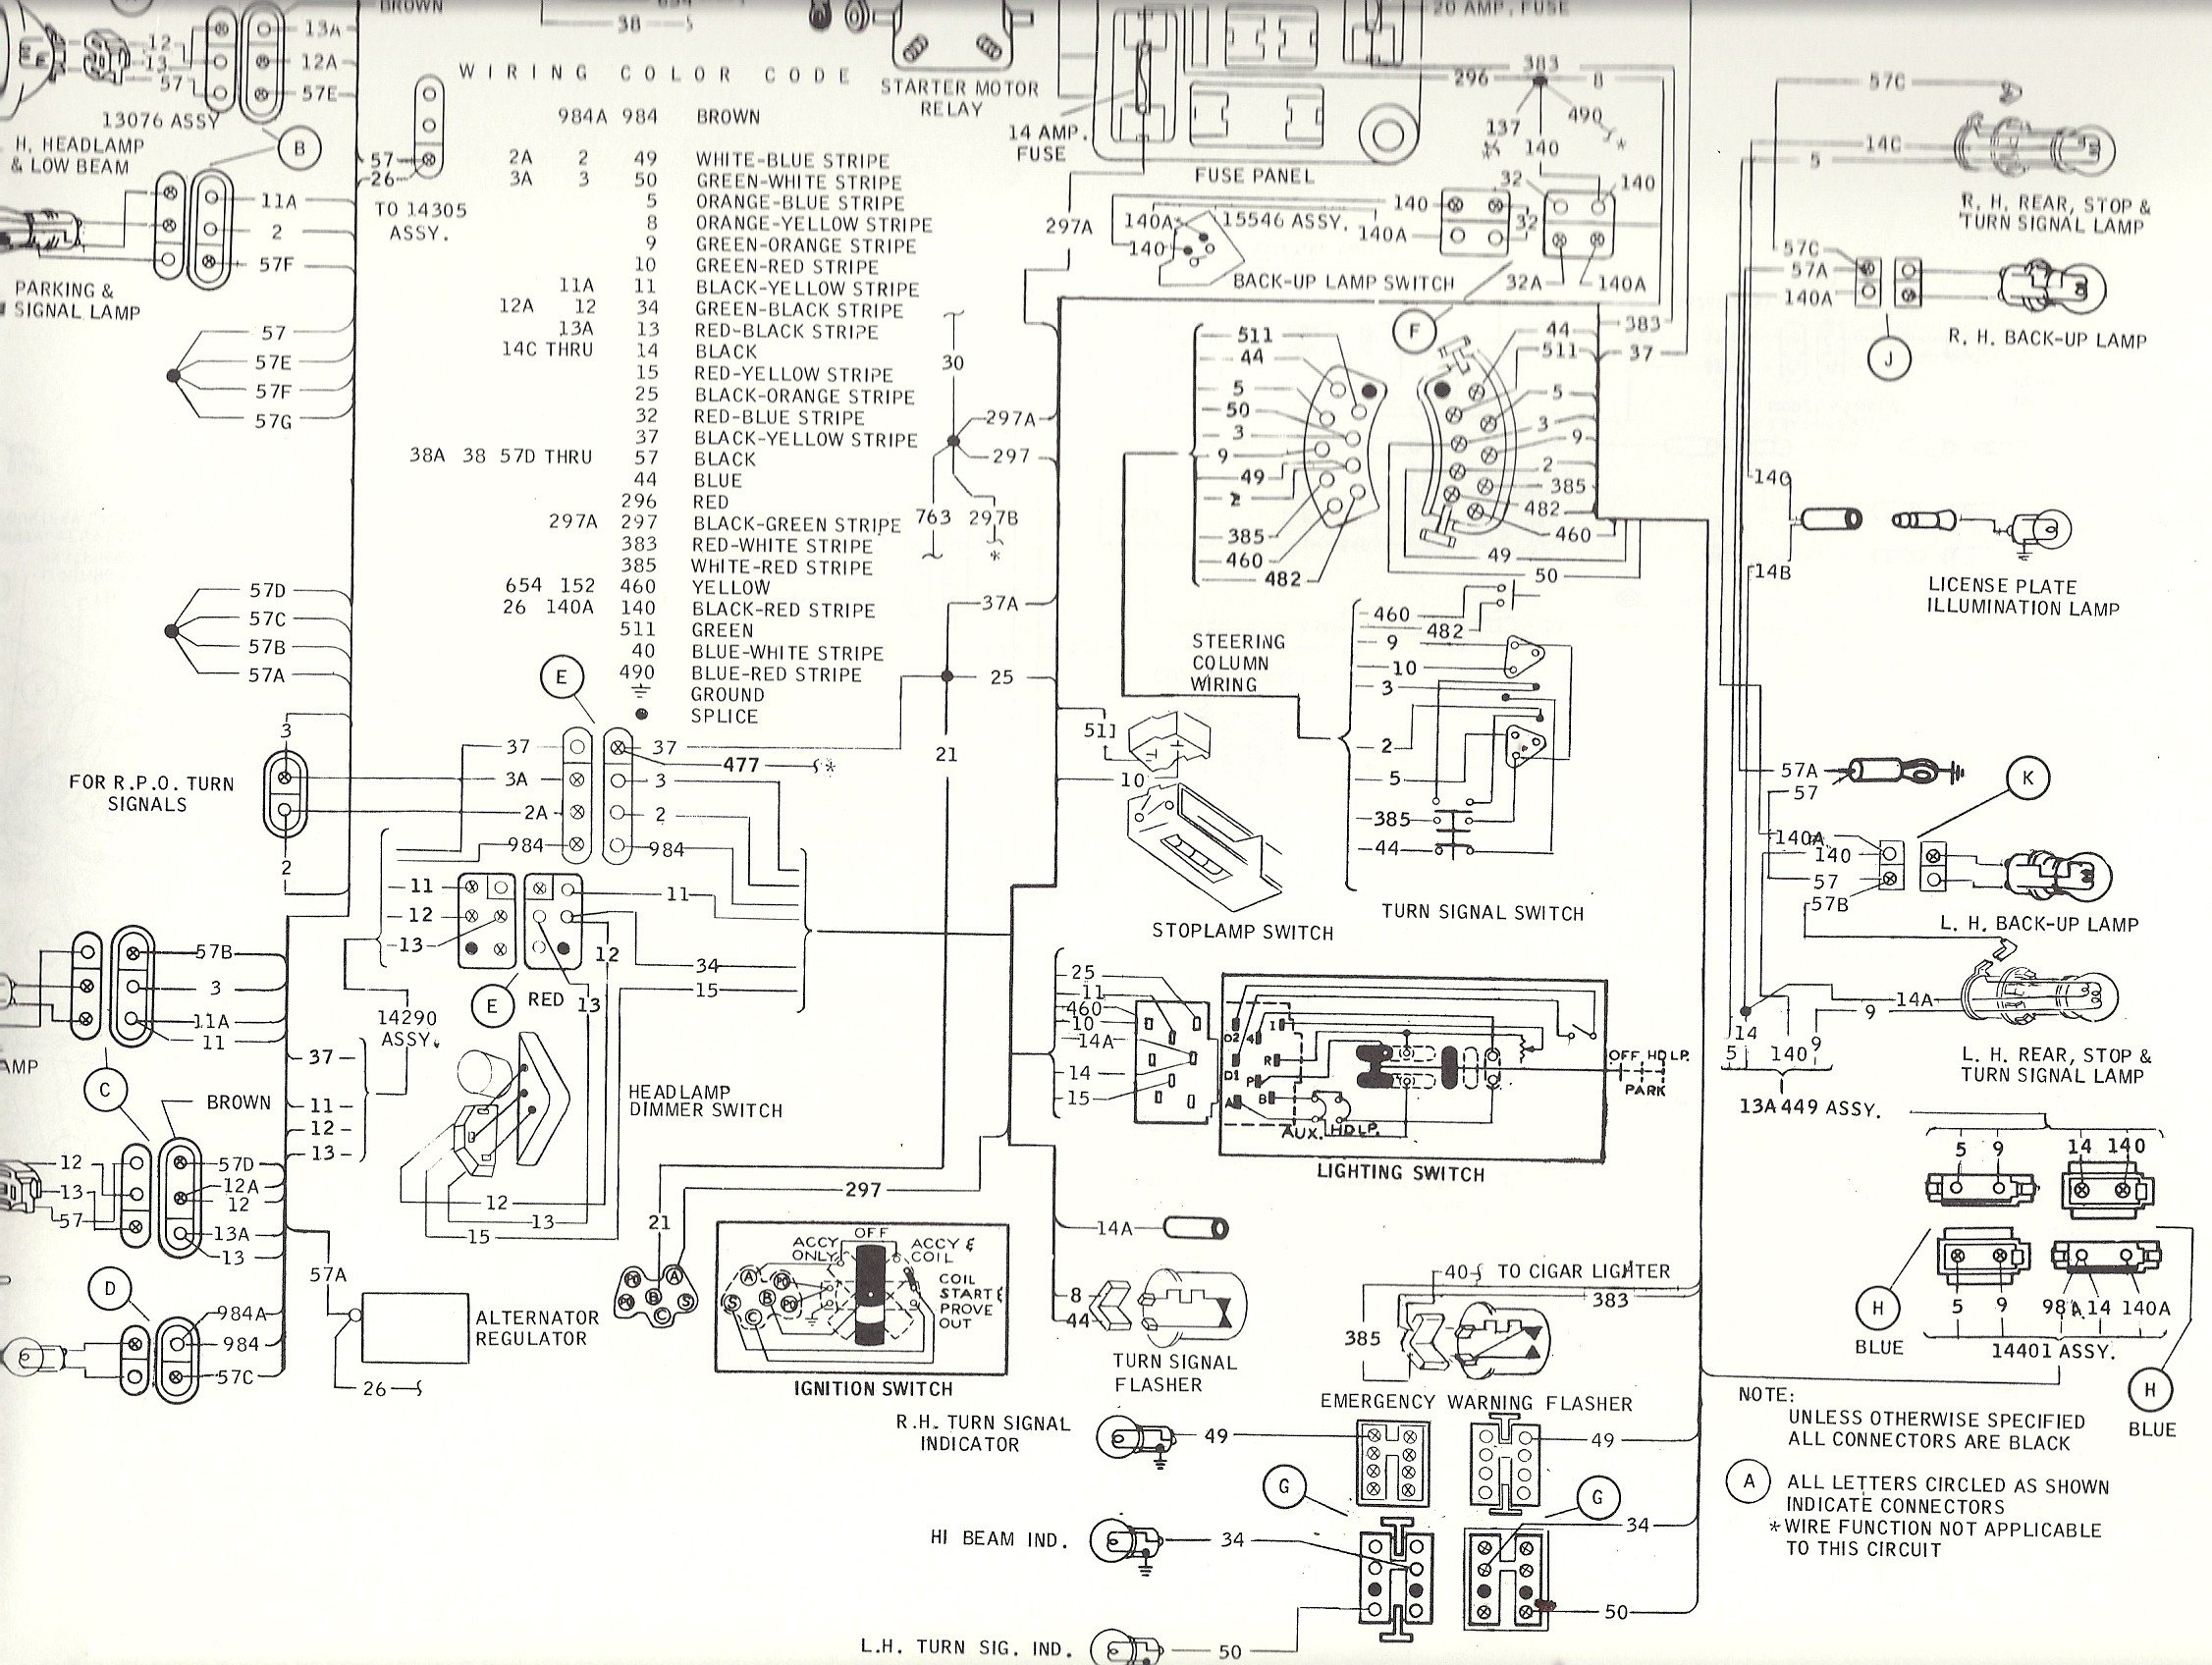 68 mustang fastback wiring diagram free download wiring diagrams 68 mustang wiring diagram free download wiring diagrams schematics 68 mustang fastback wiring diagram 3 at 68 mustang fuel system sciox Images